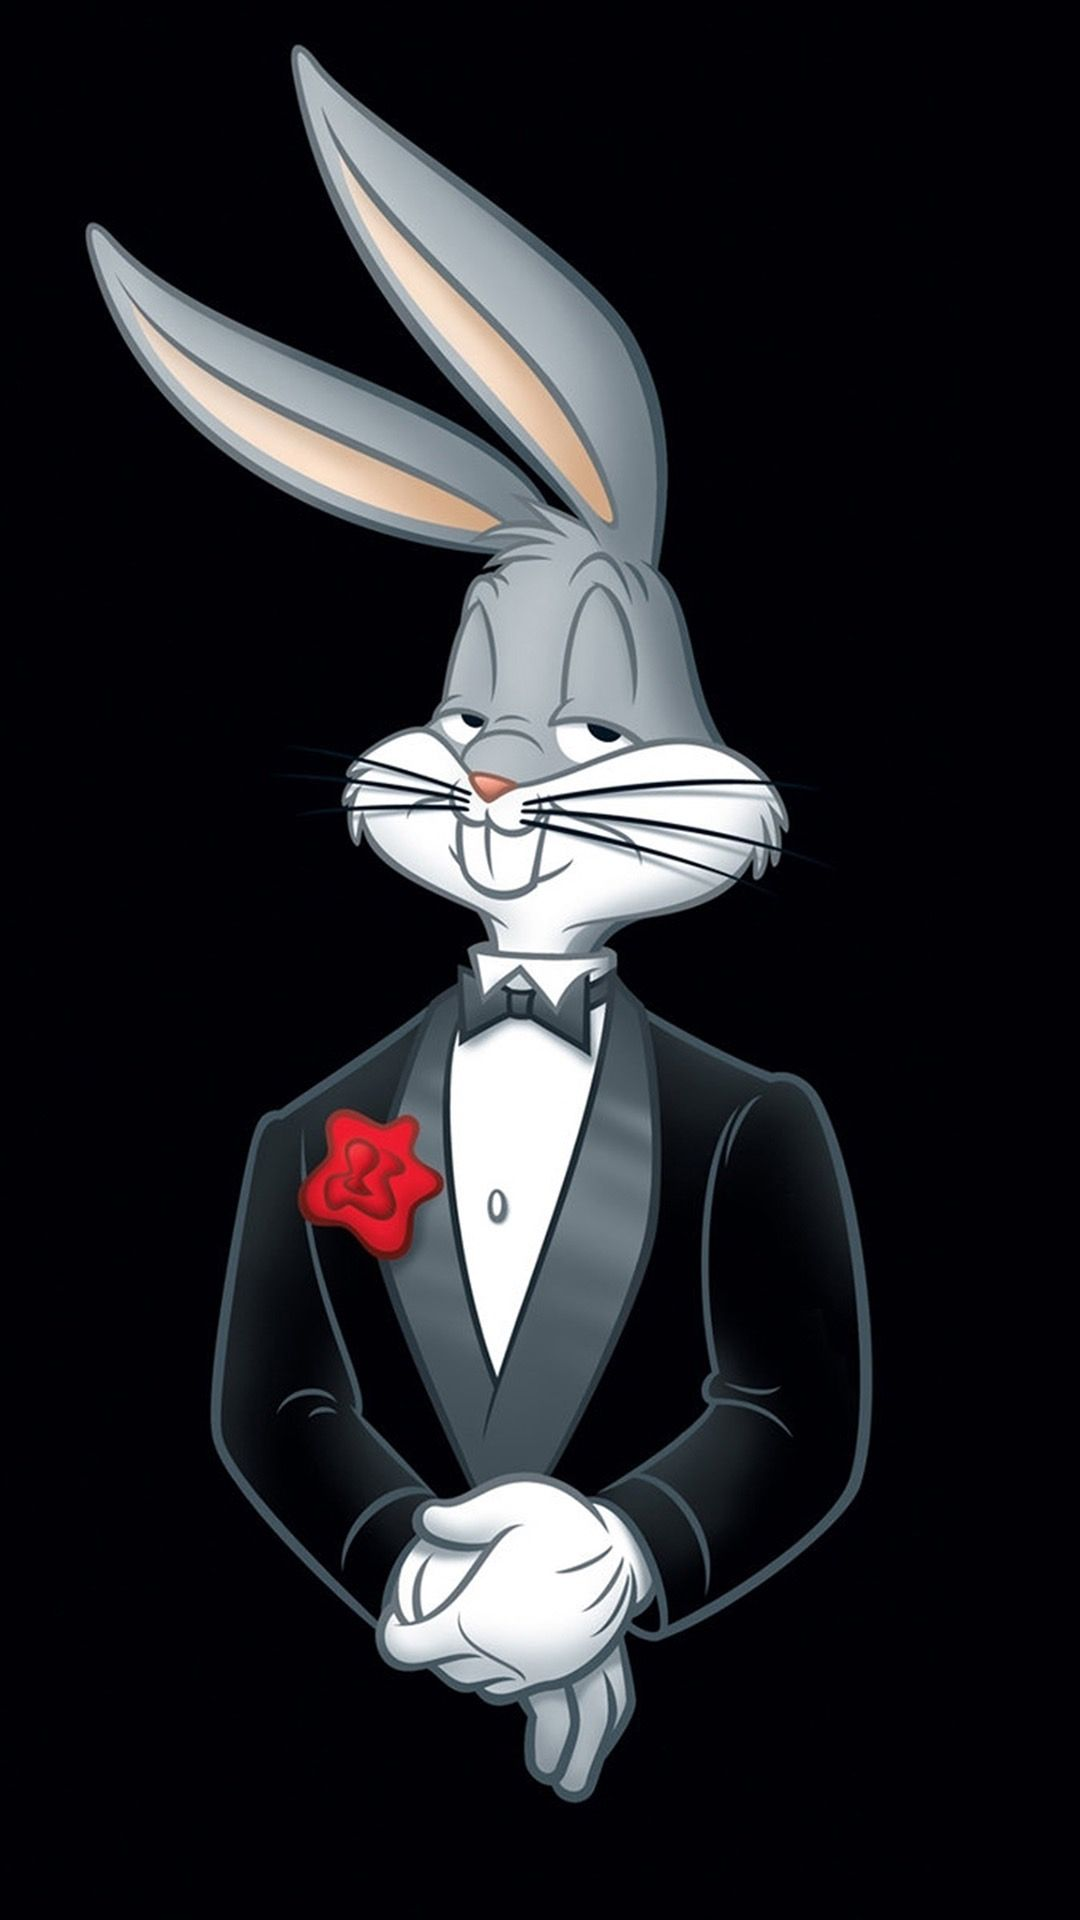 Bugs Bunny Wallpaper For Android | Blangsak Wall